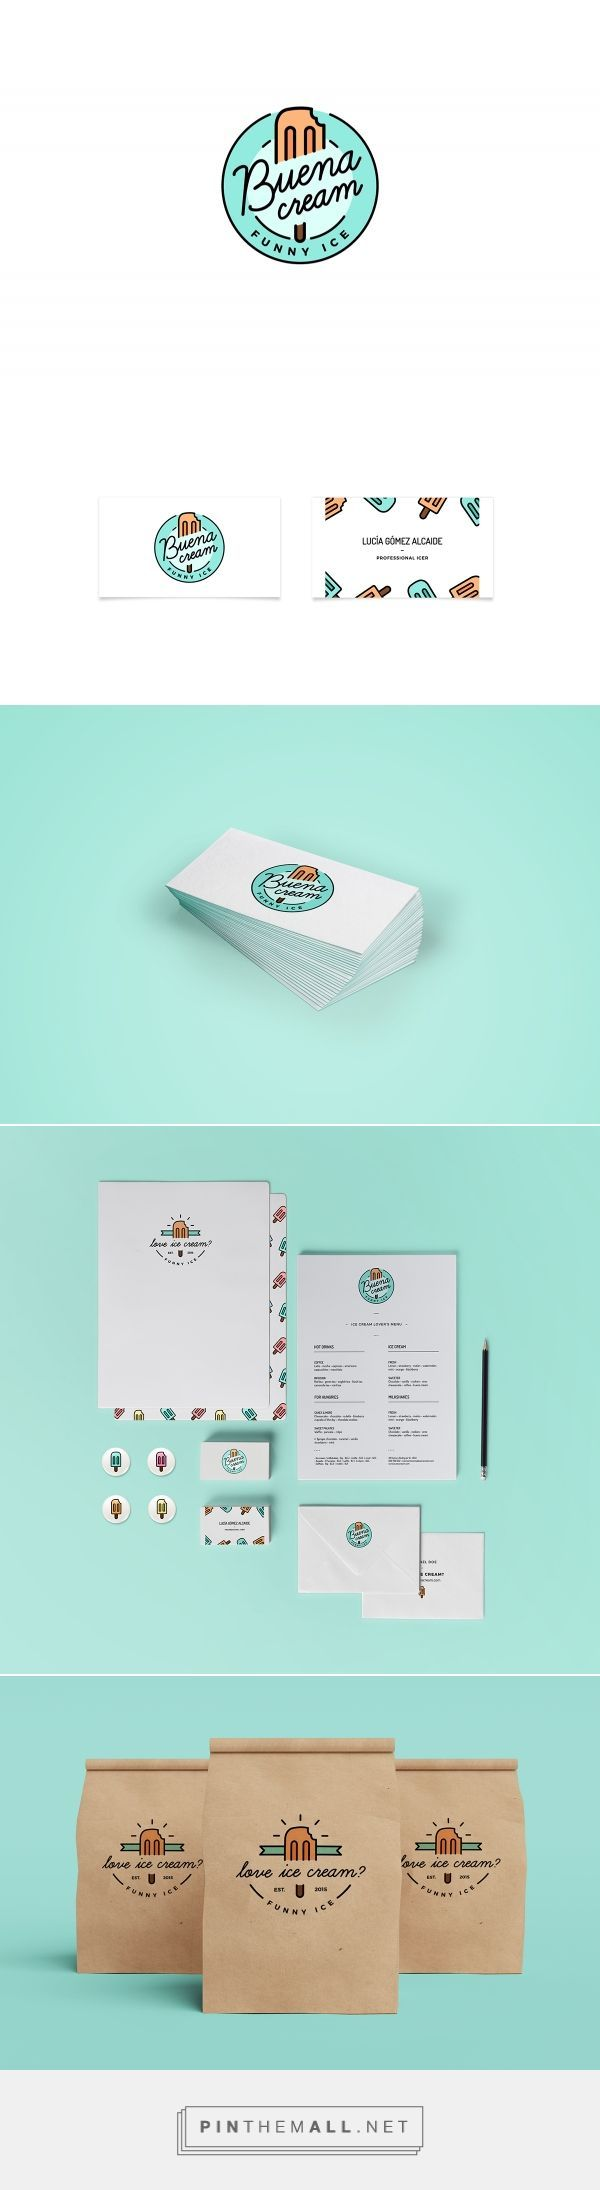 Buena Cream Ice Cream Shop Branding by Lucia Gomez